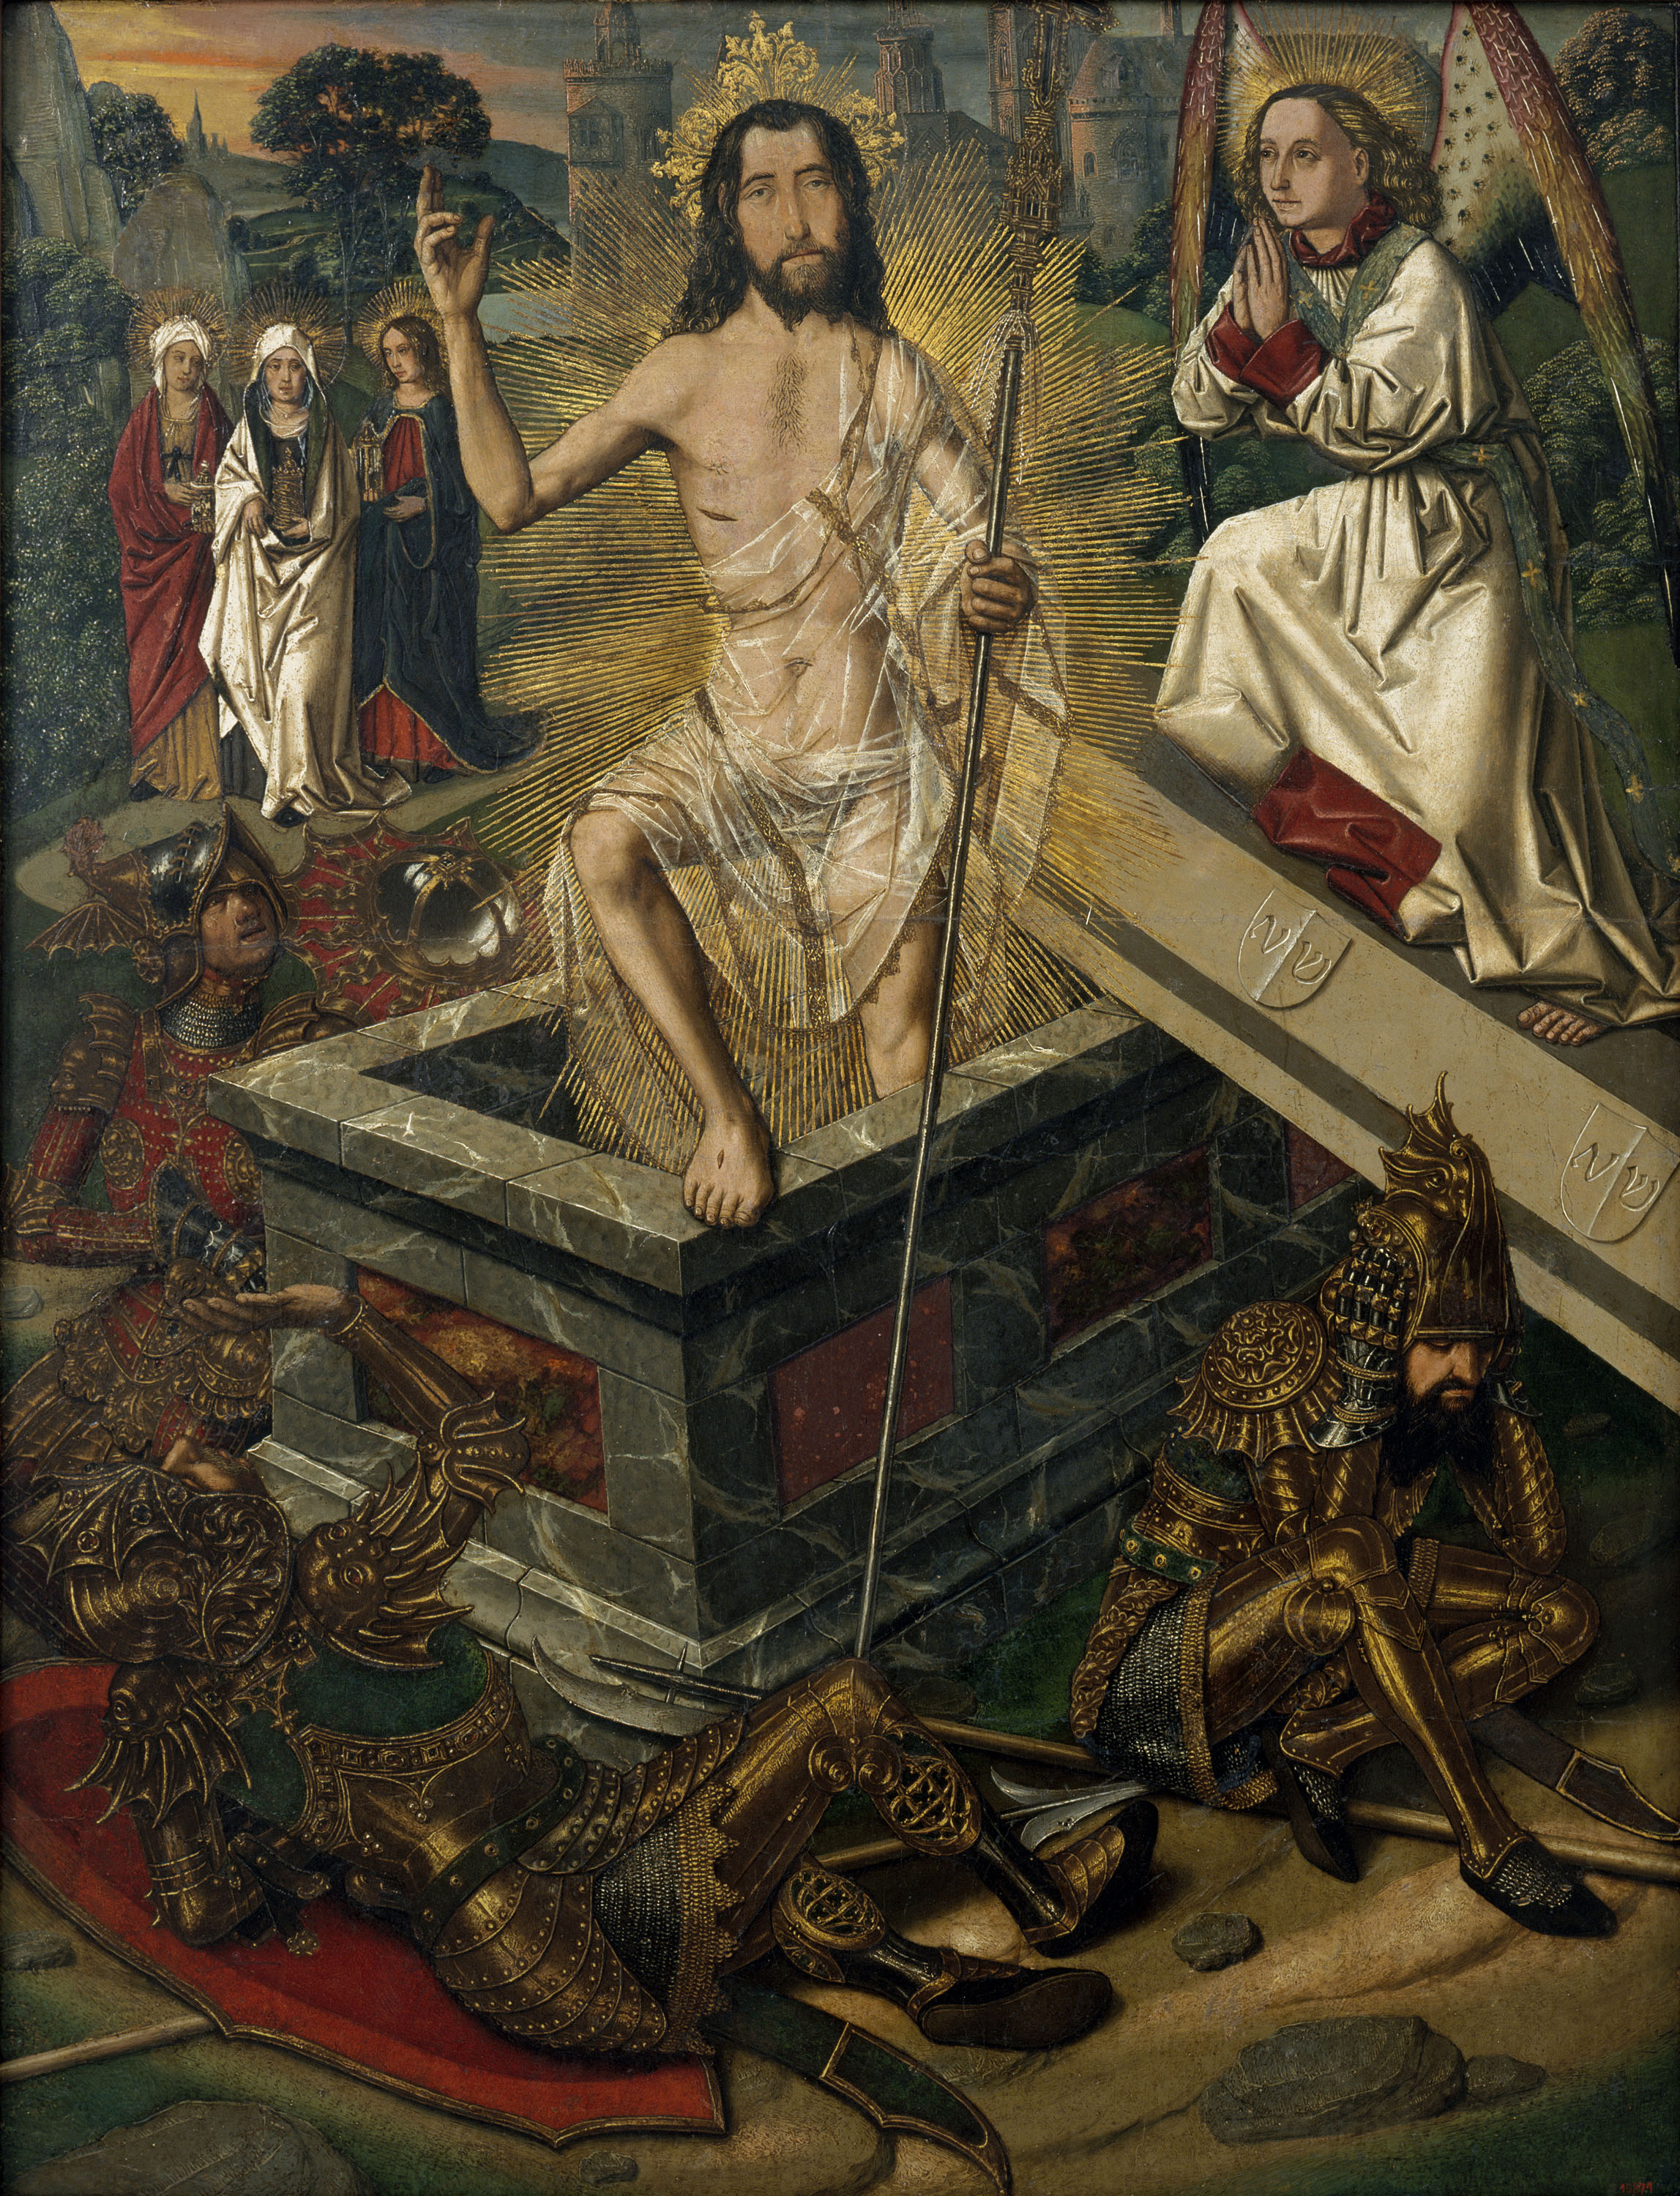 Bartolomé Bermejo, The Resurrection, around 1475